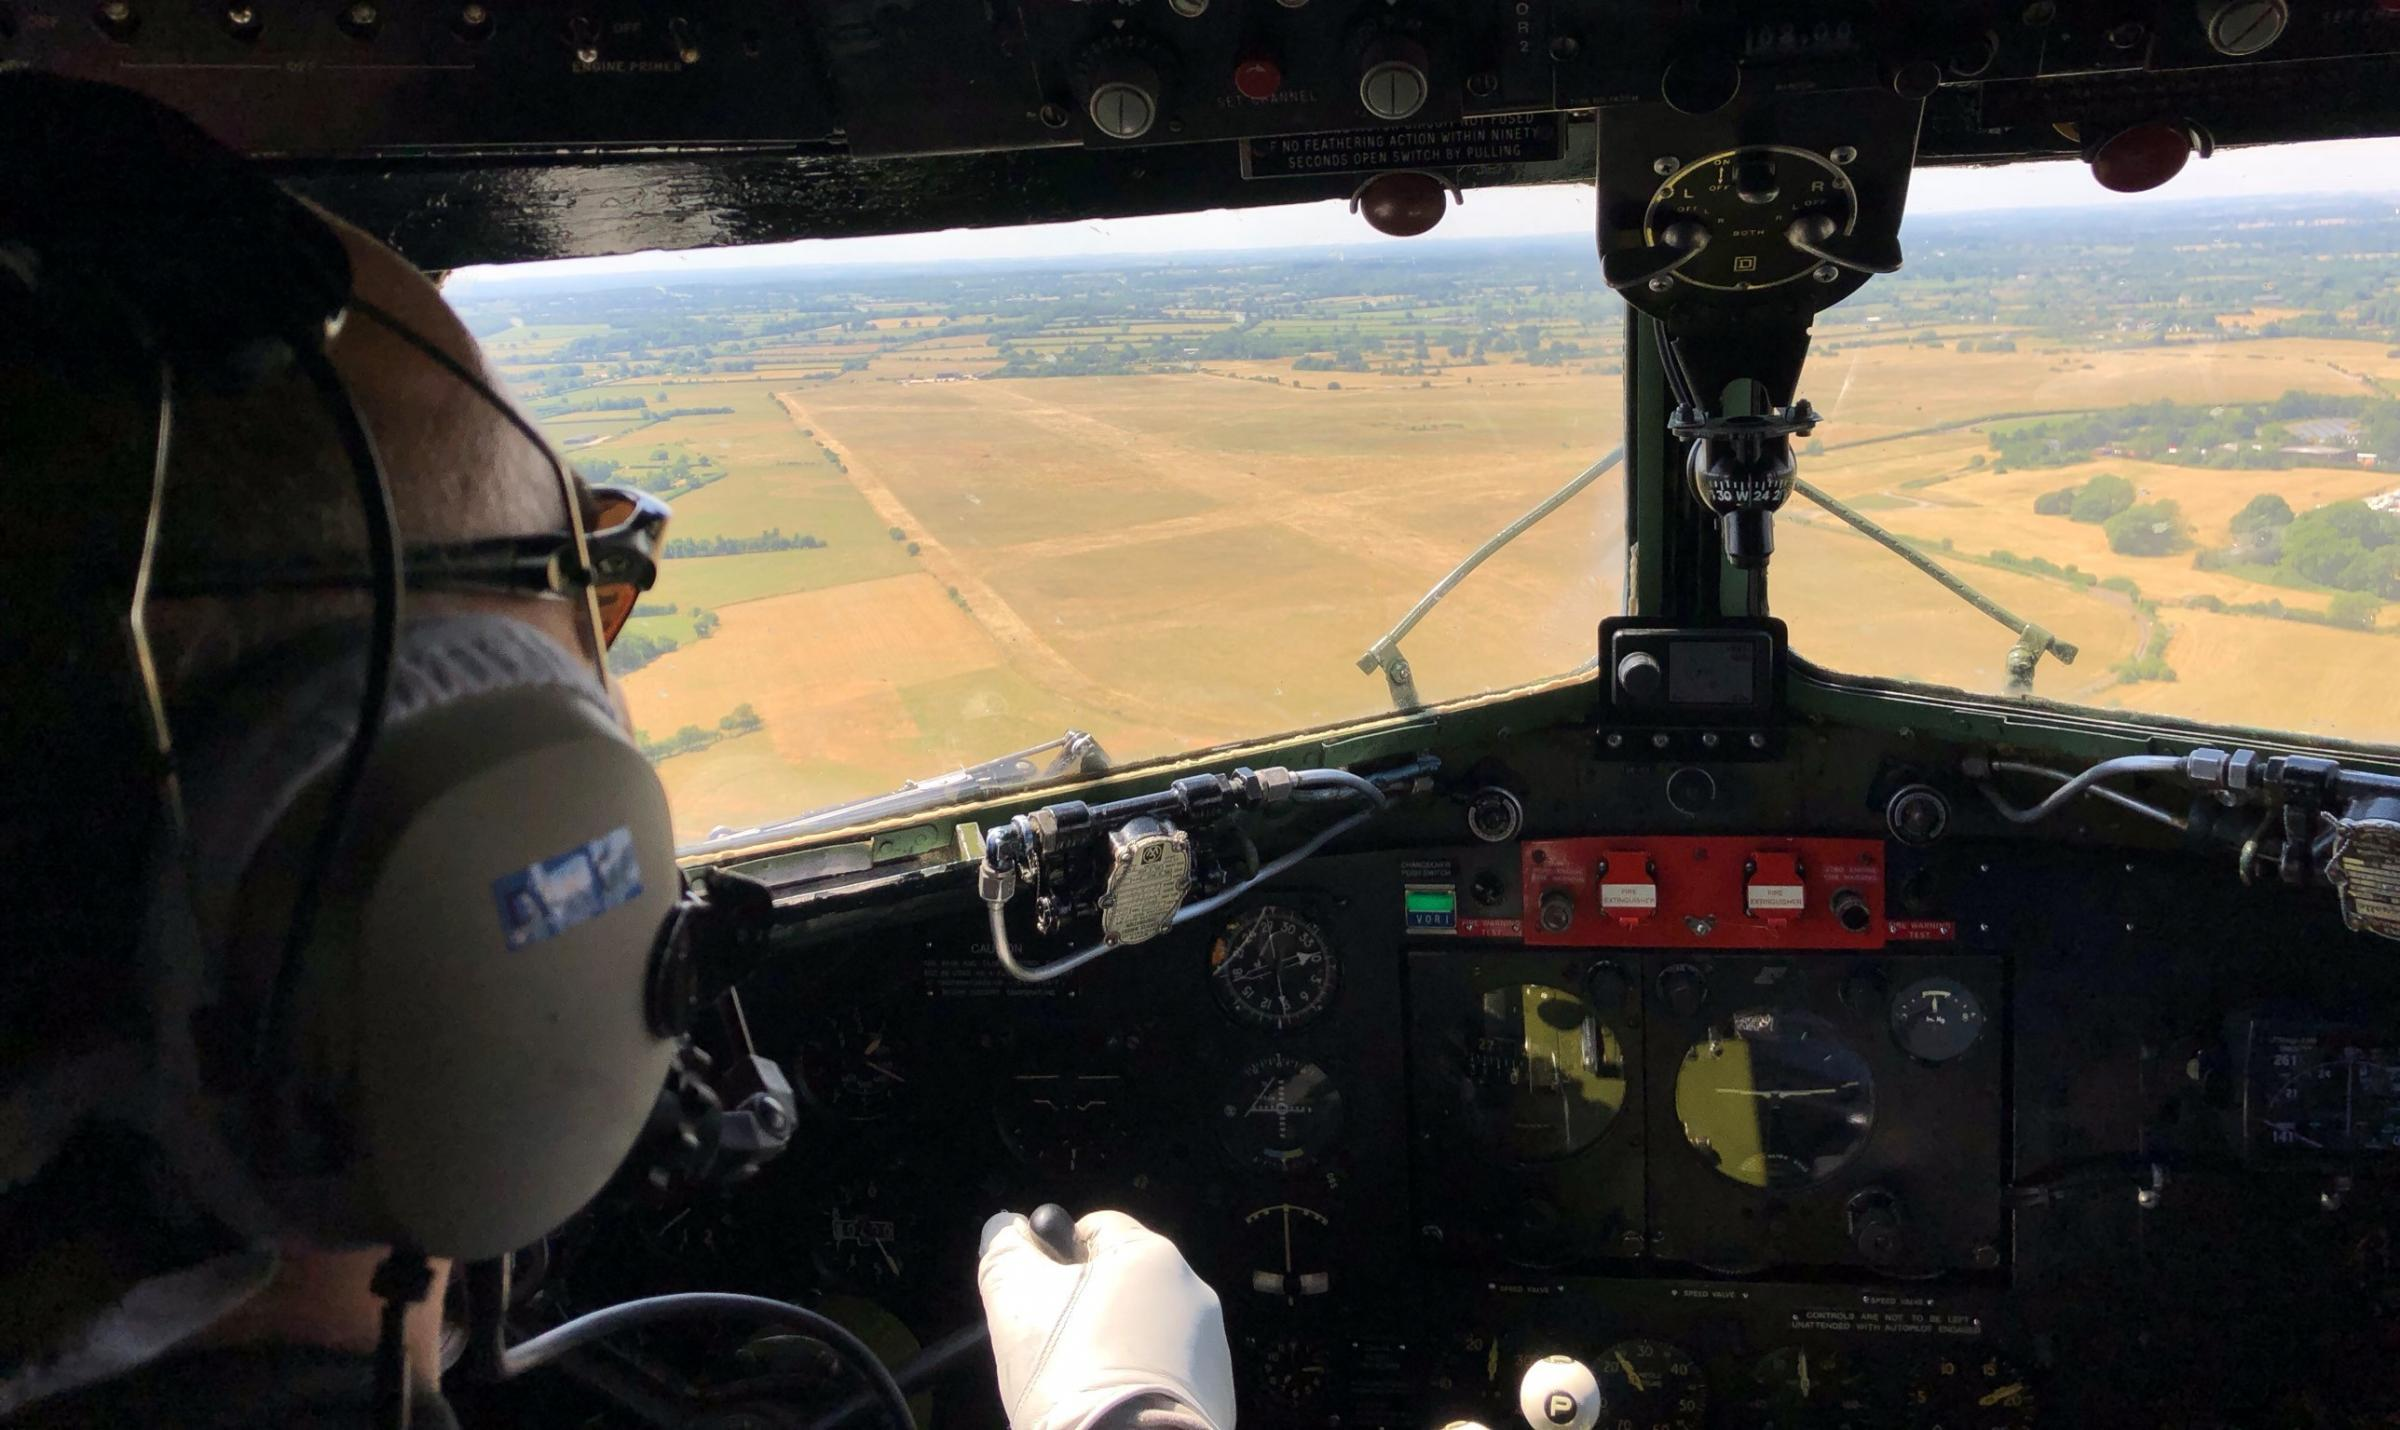 The view from BBMF Dakota Kwicherbichen of former RAF Blakehill Farm shortly after the RAF 100 Flypast in London